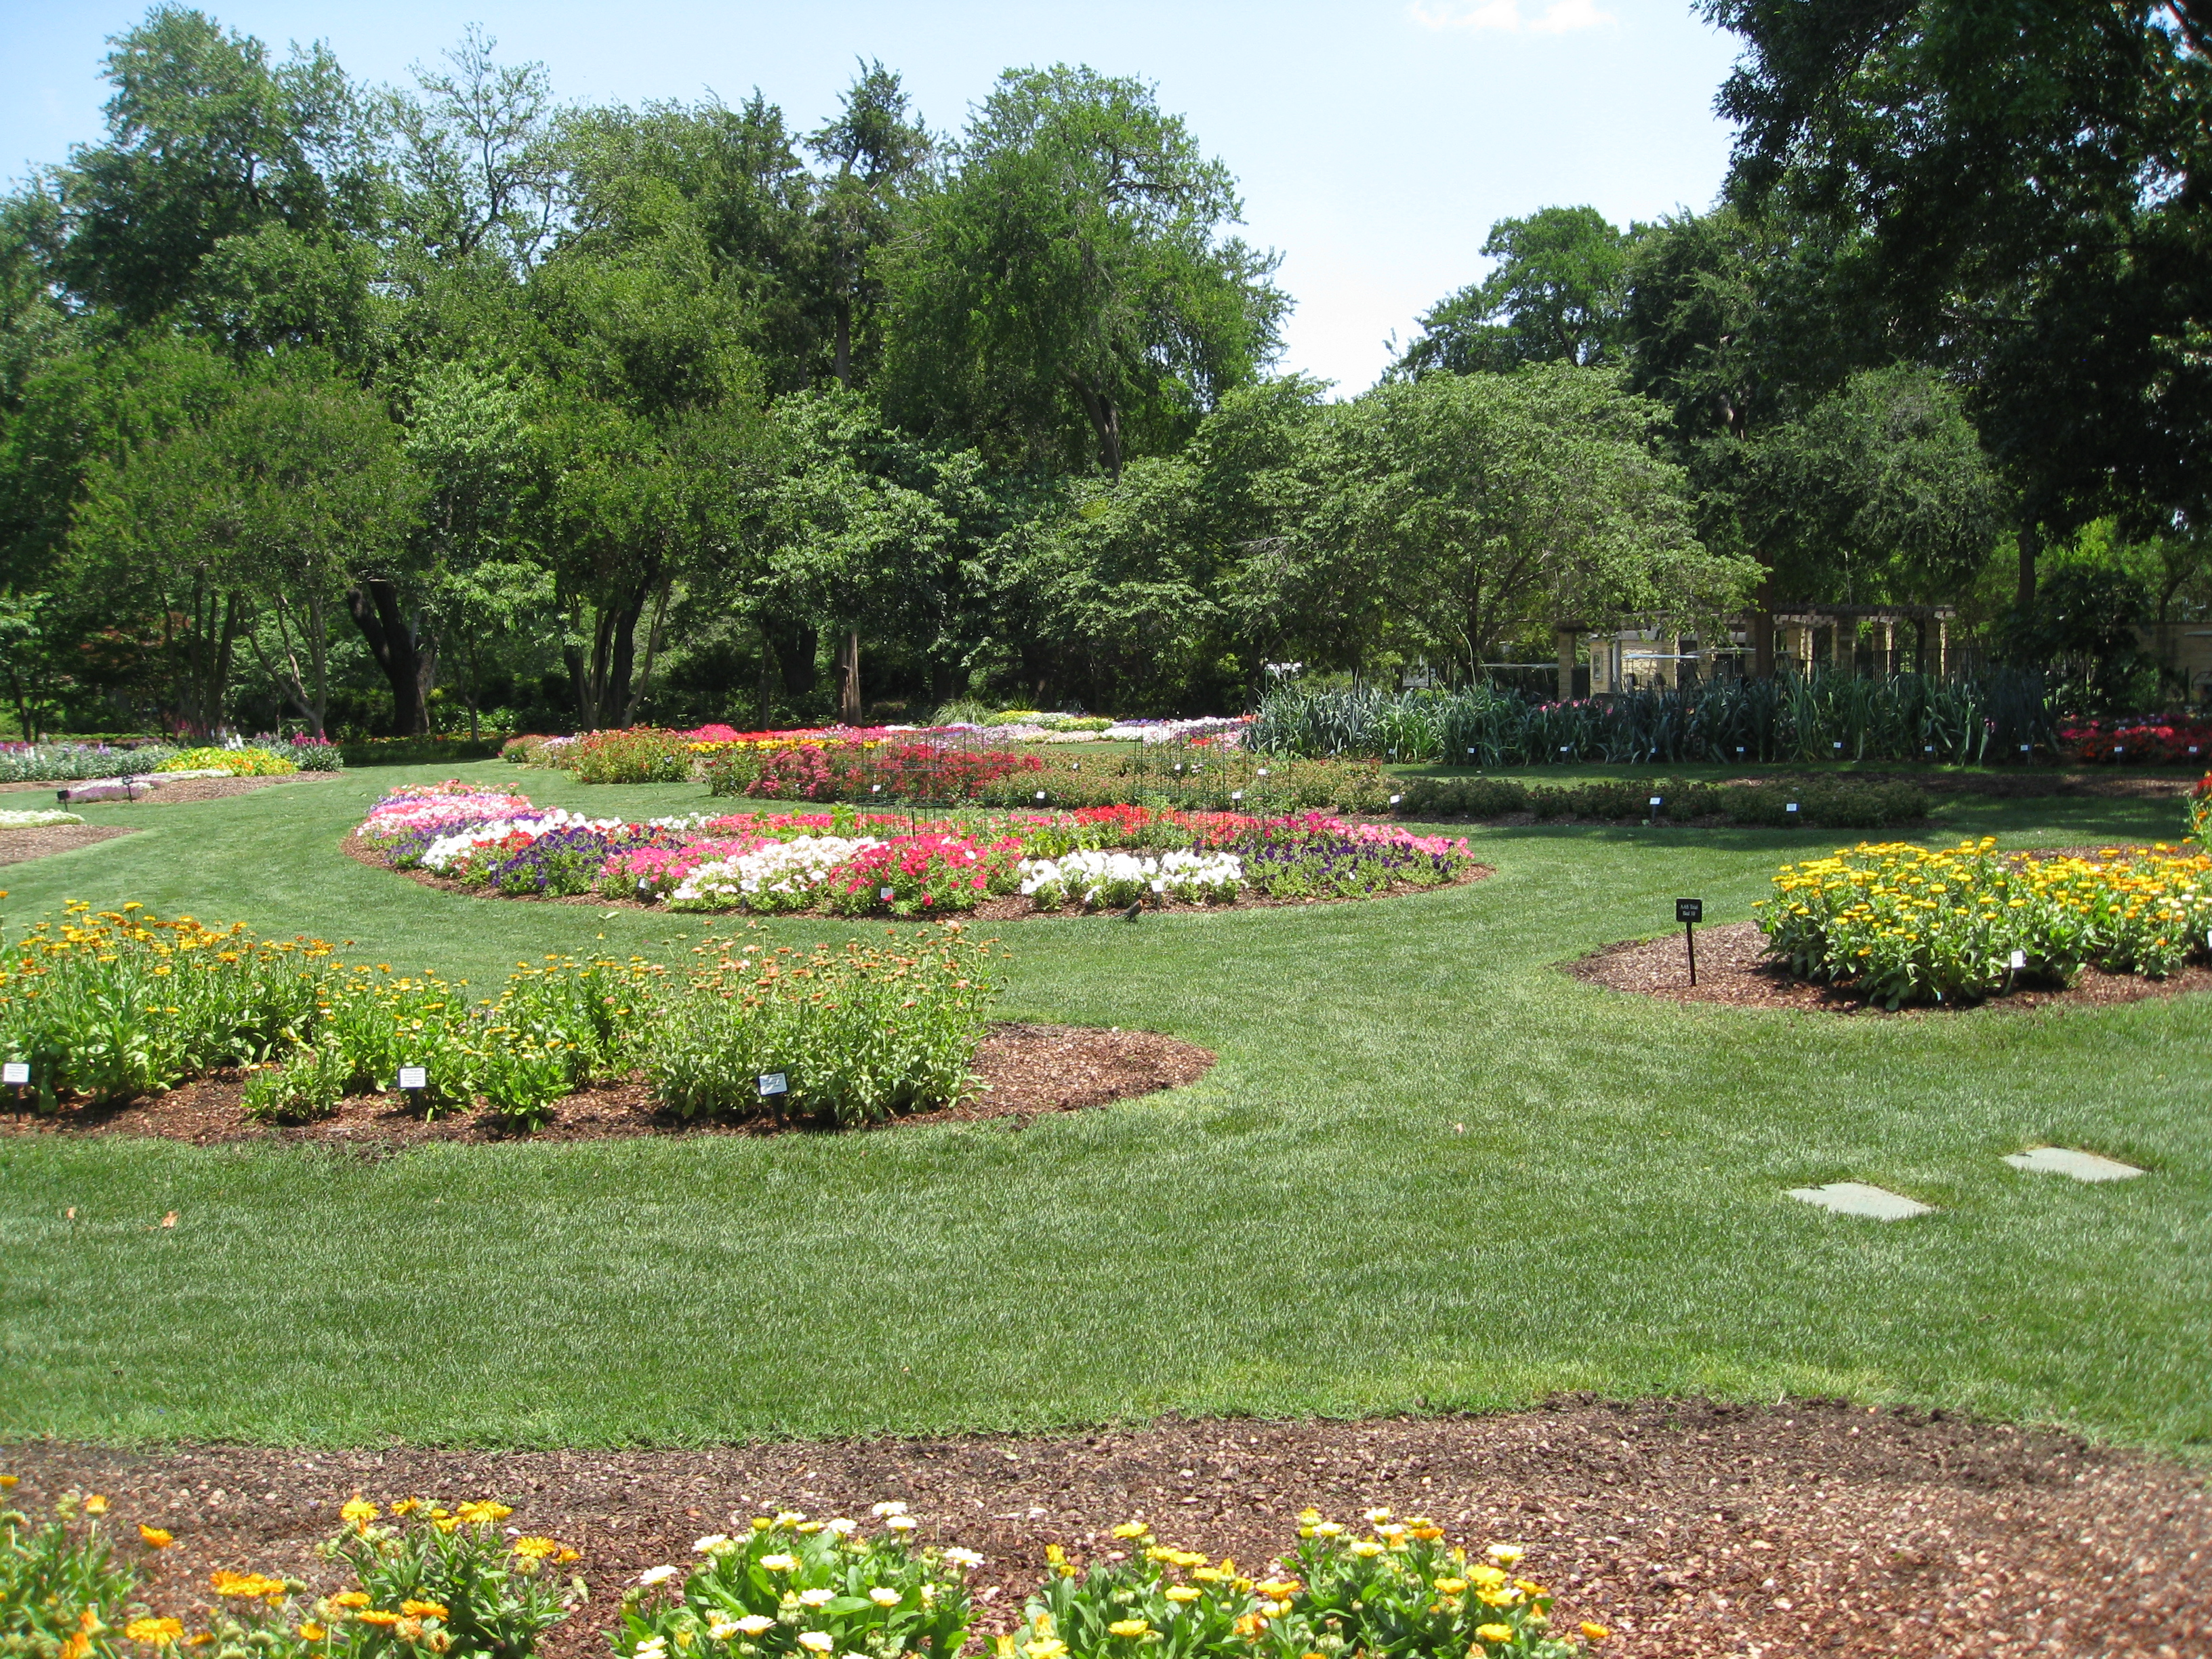 One of two All American Selections trial gardens on the property.